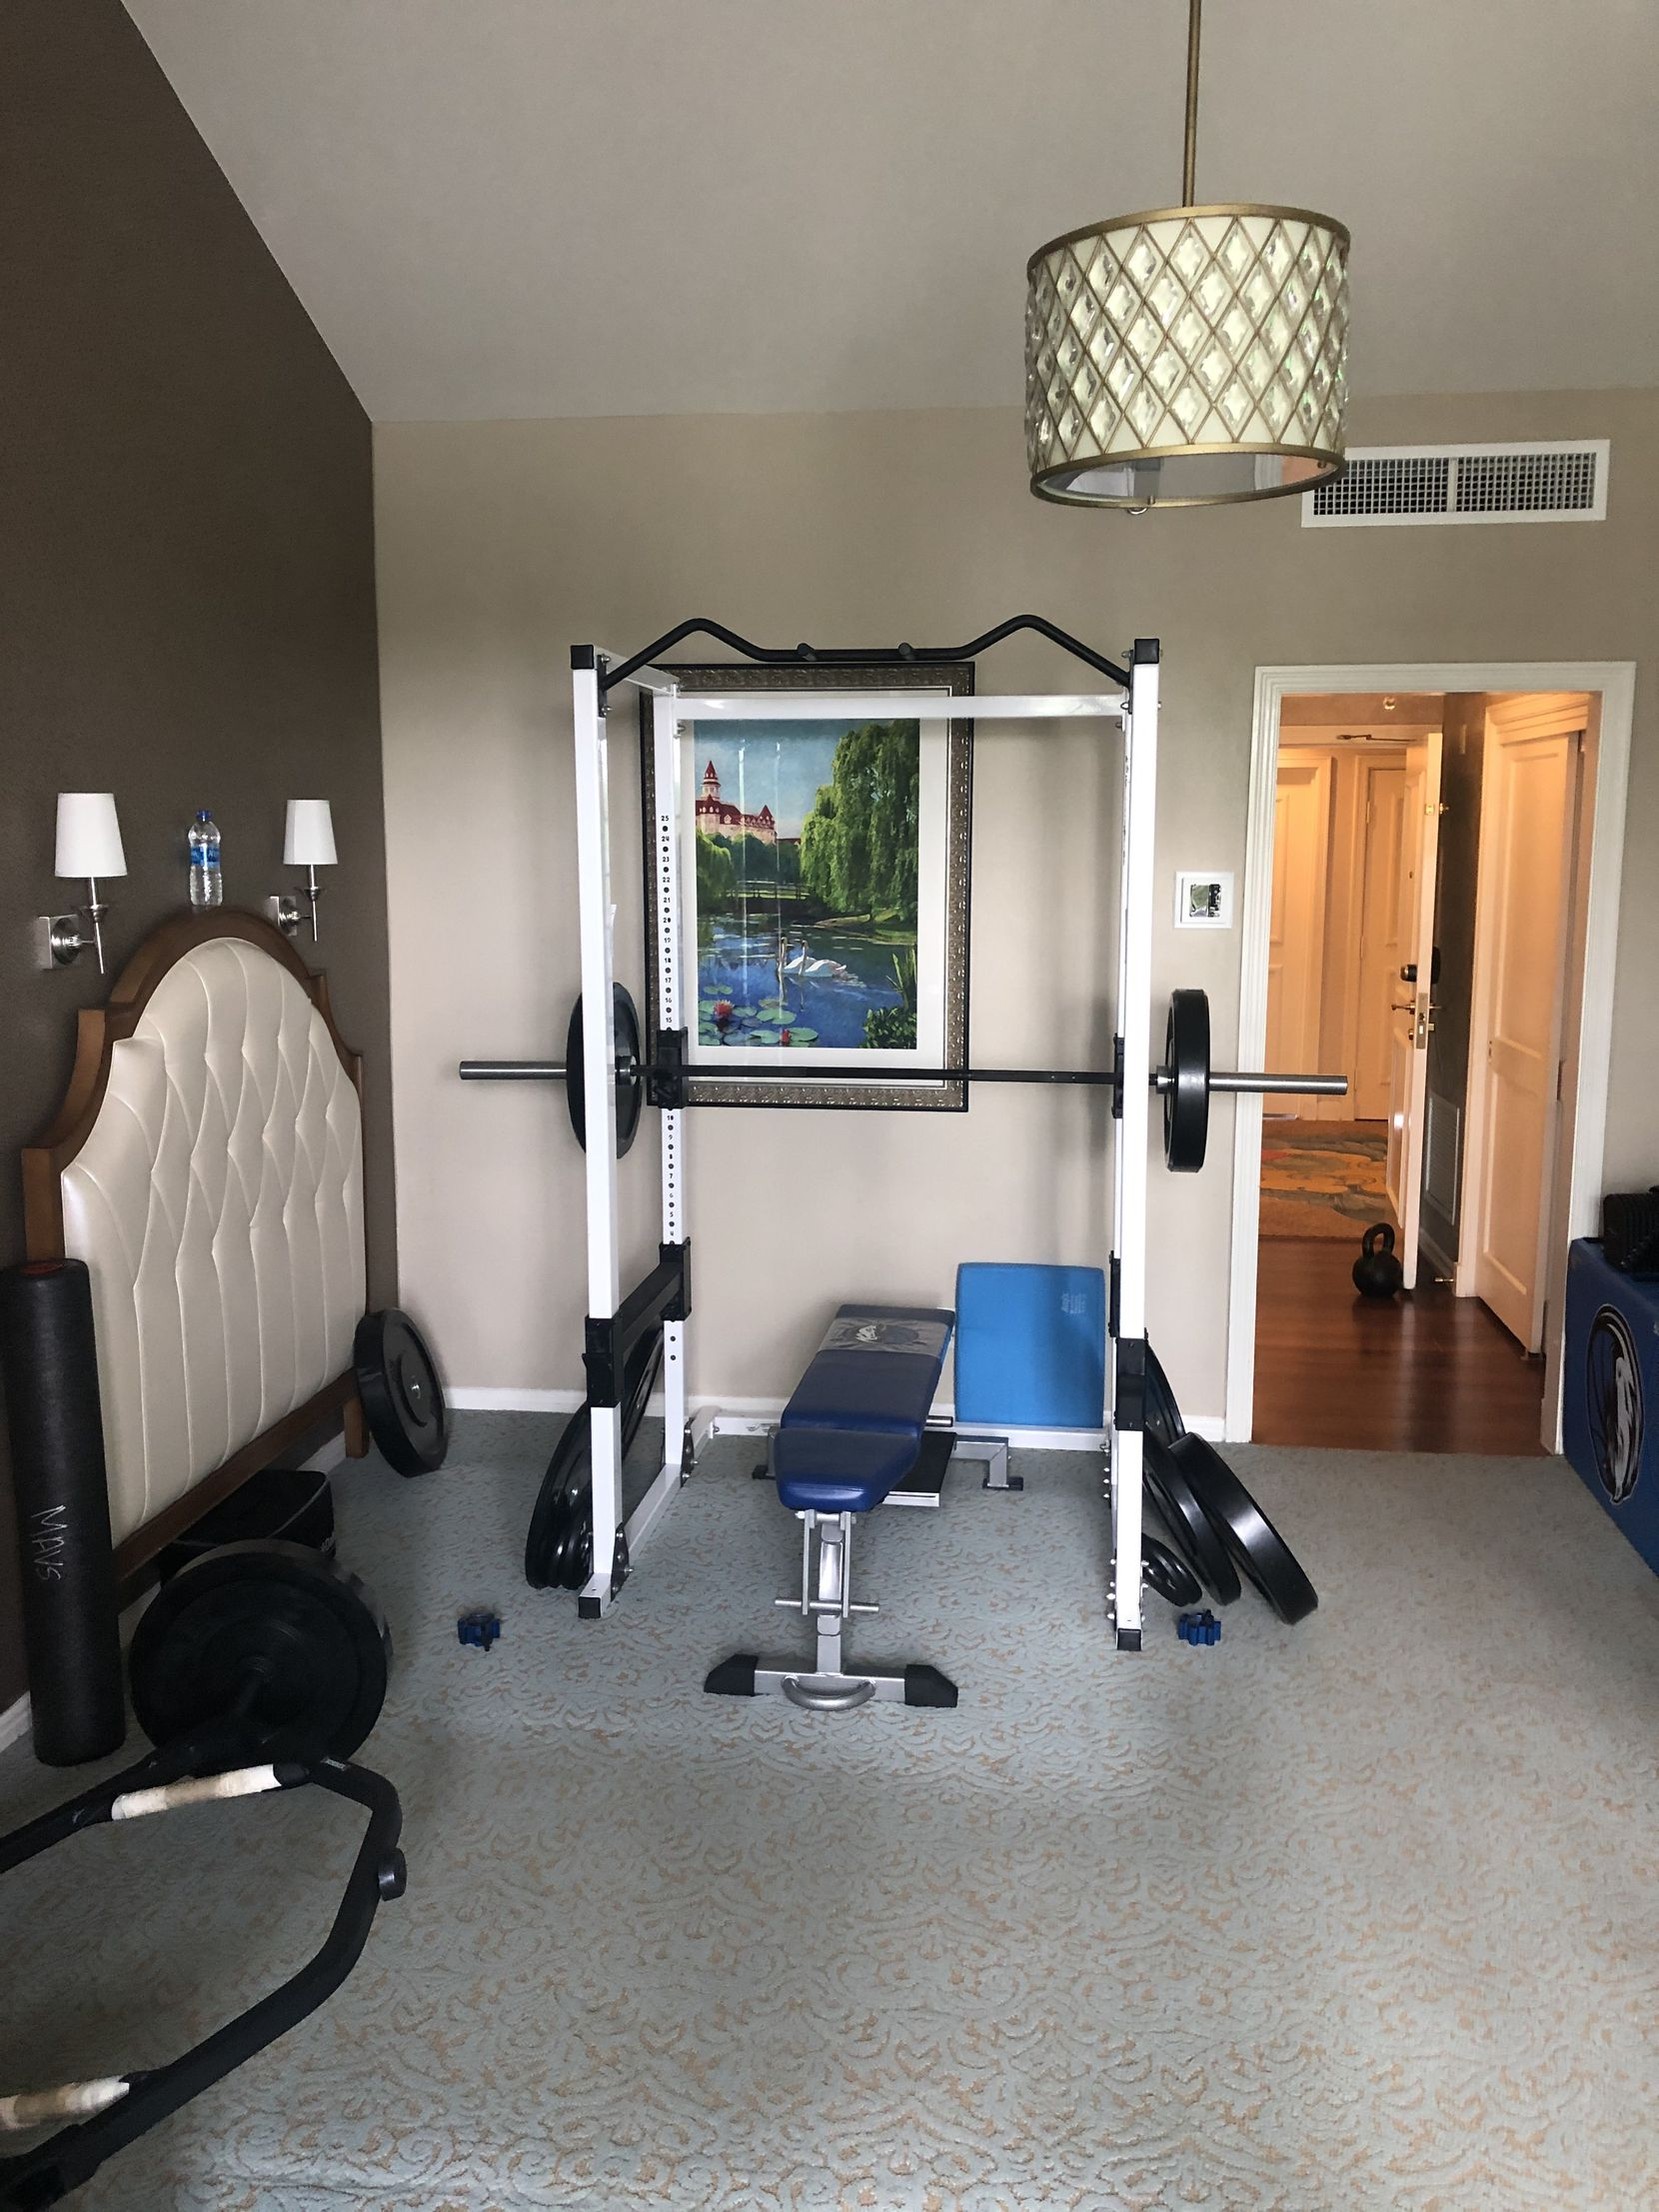 One of the two 400-square-foot guest rooms at the Grand Floridian that the Mavericks converted into workout rooms by clearing out all of the furniture.